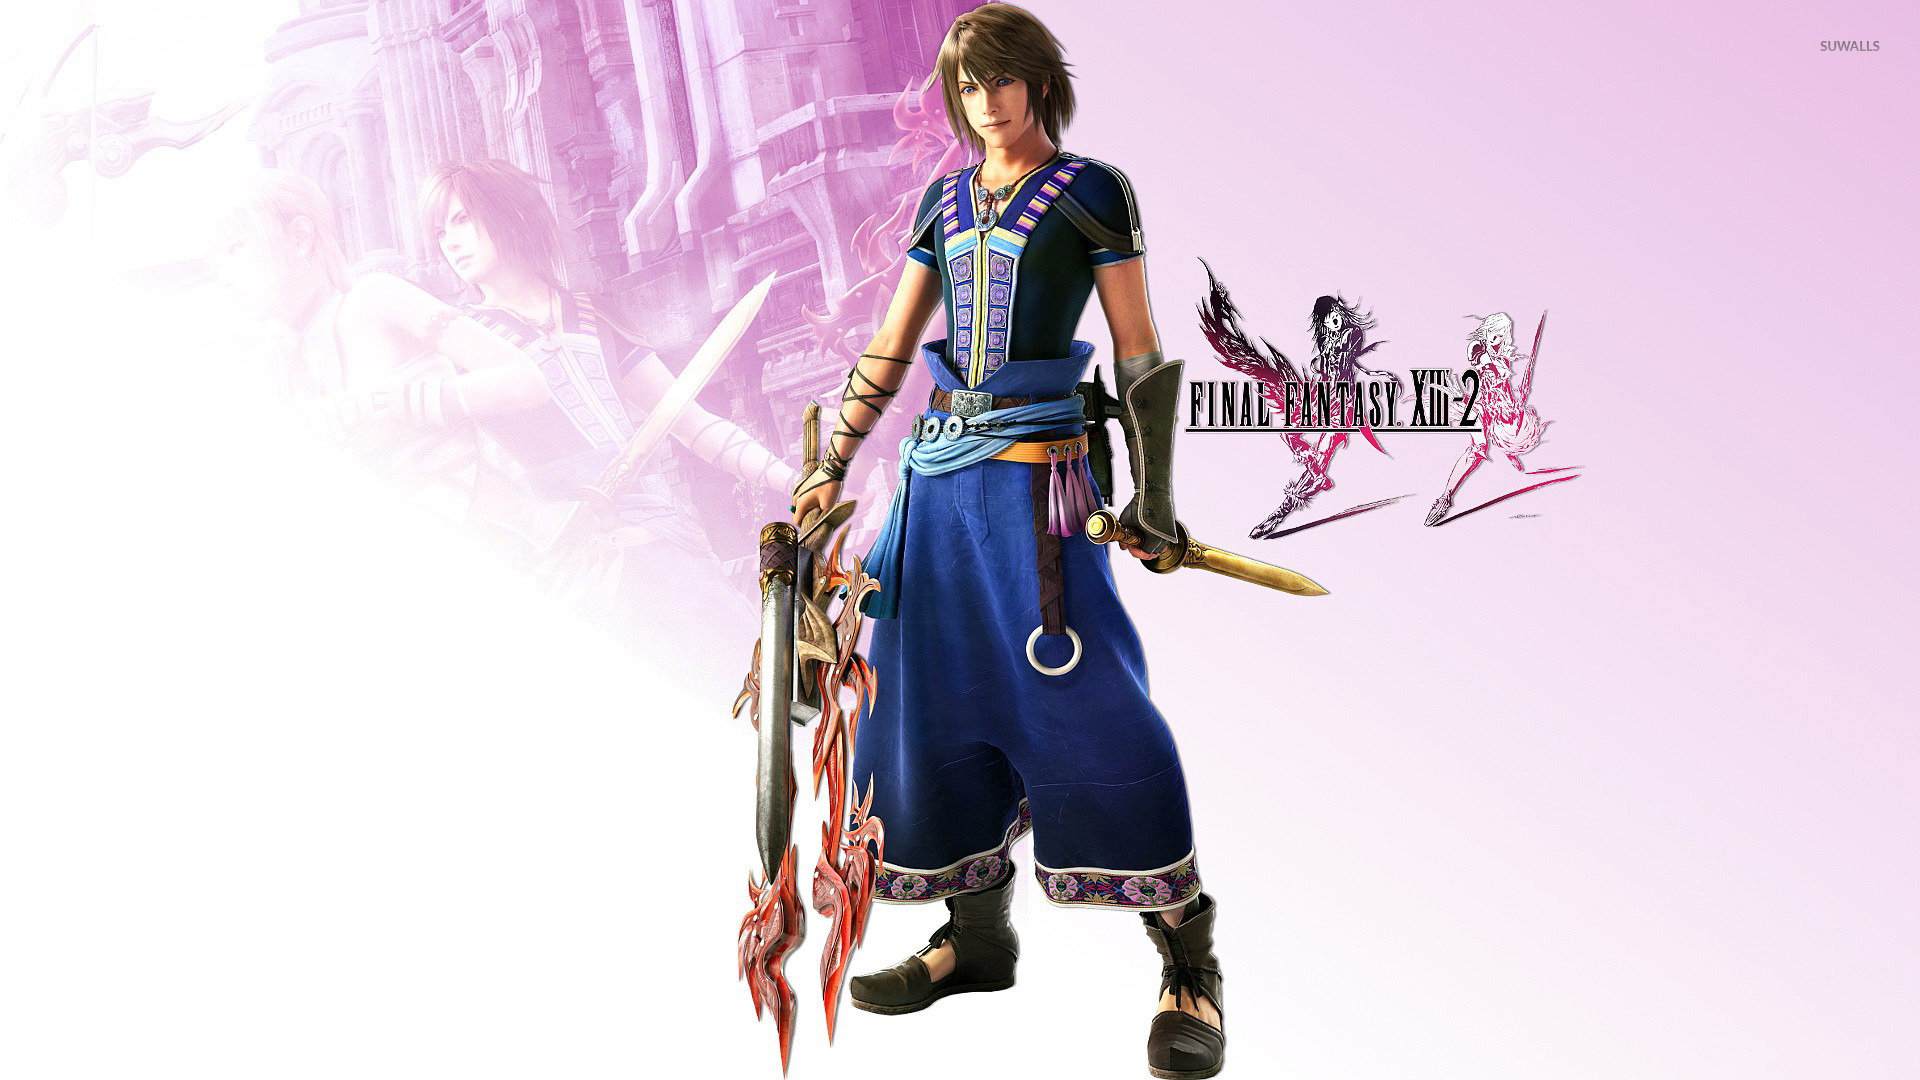 Final Fantasy XIII - Vanille Gameplay 01 - YouTube